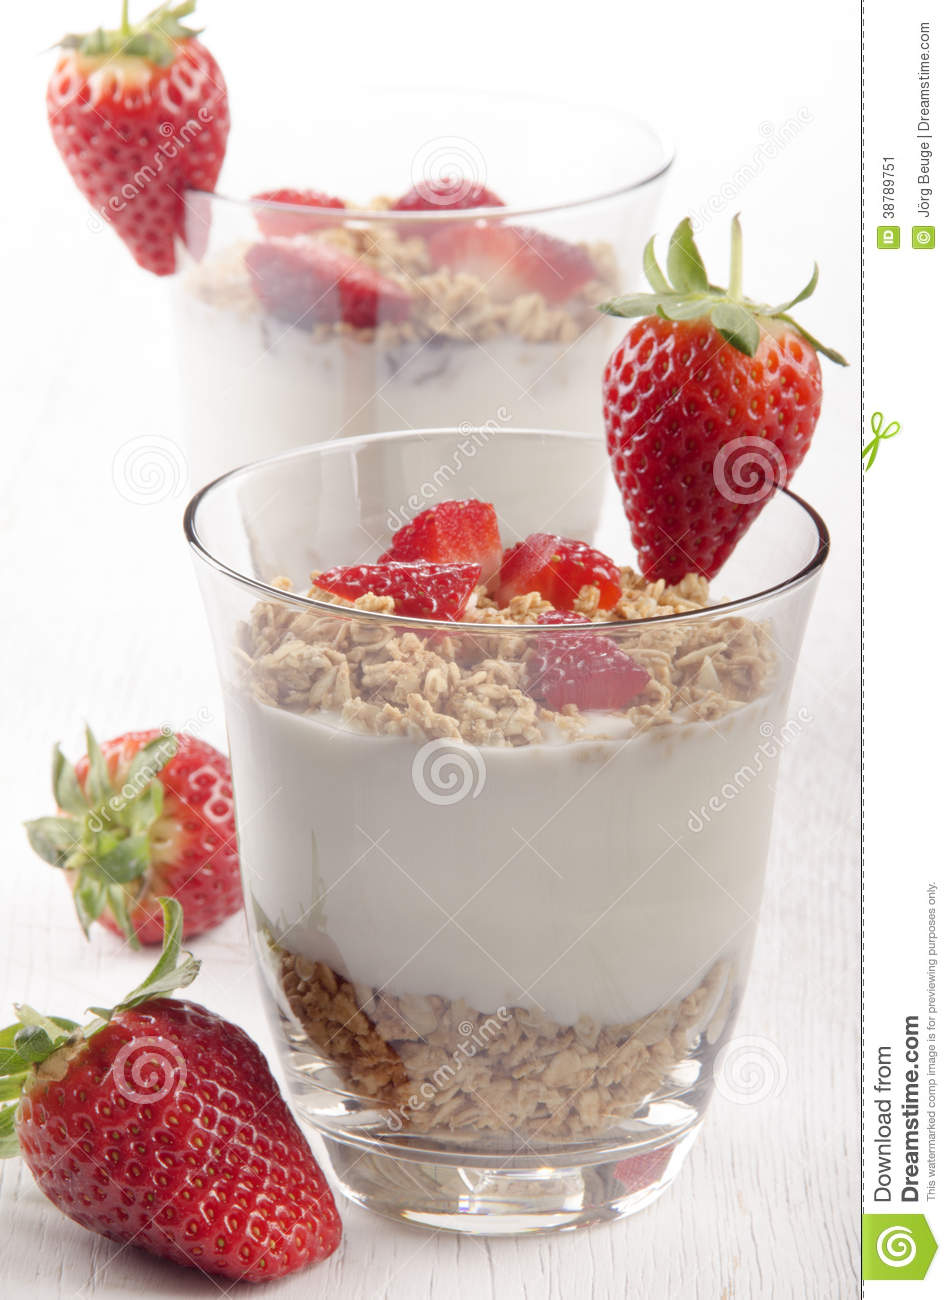 Yogurt with crunchy cereal and strawberry